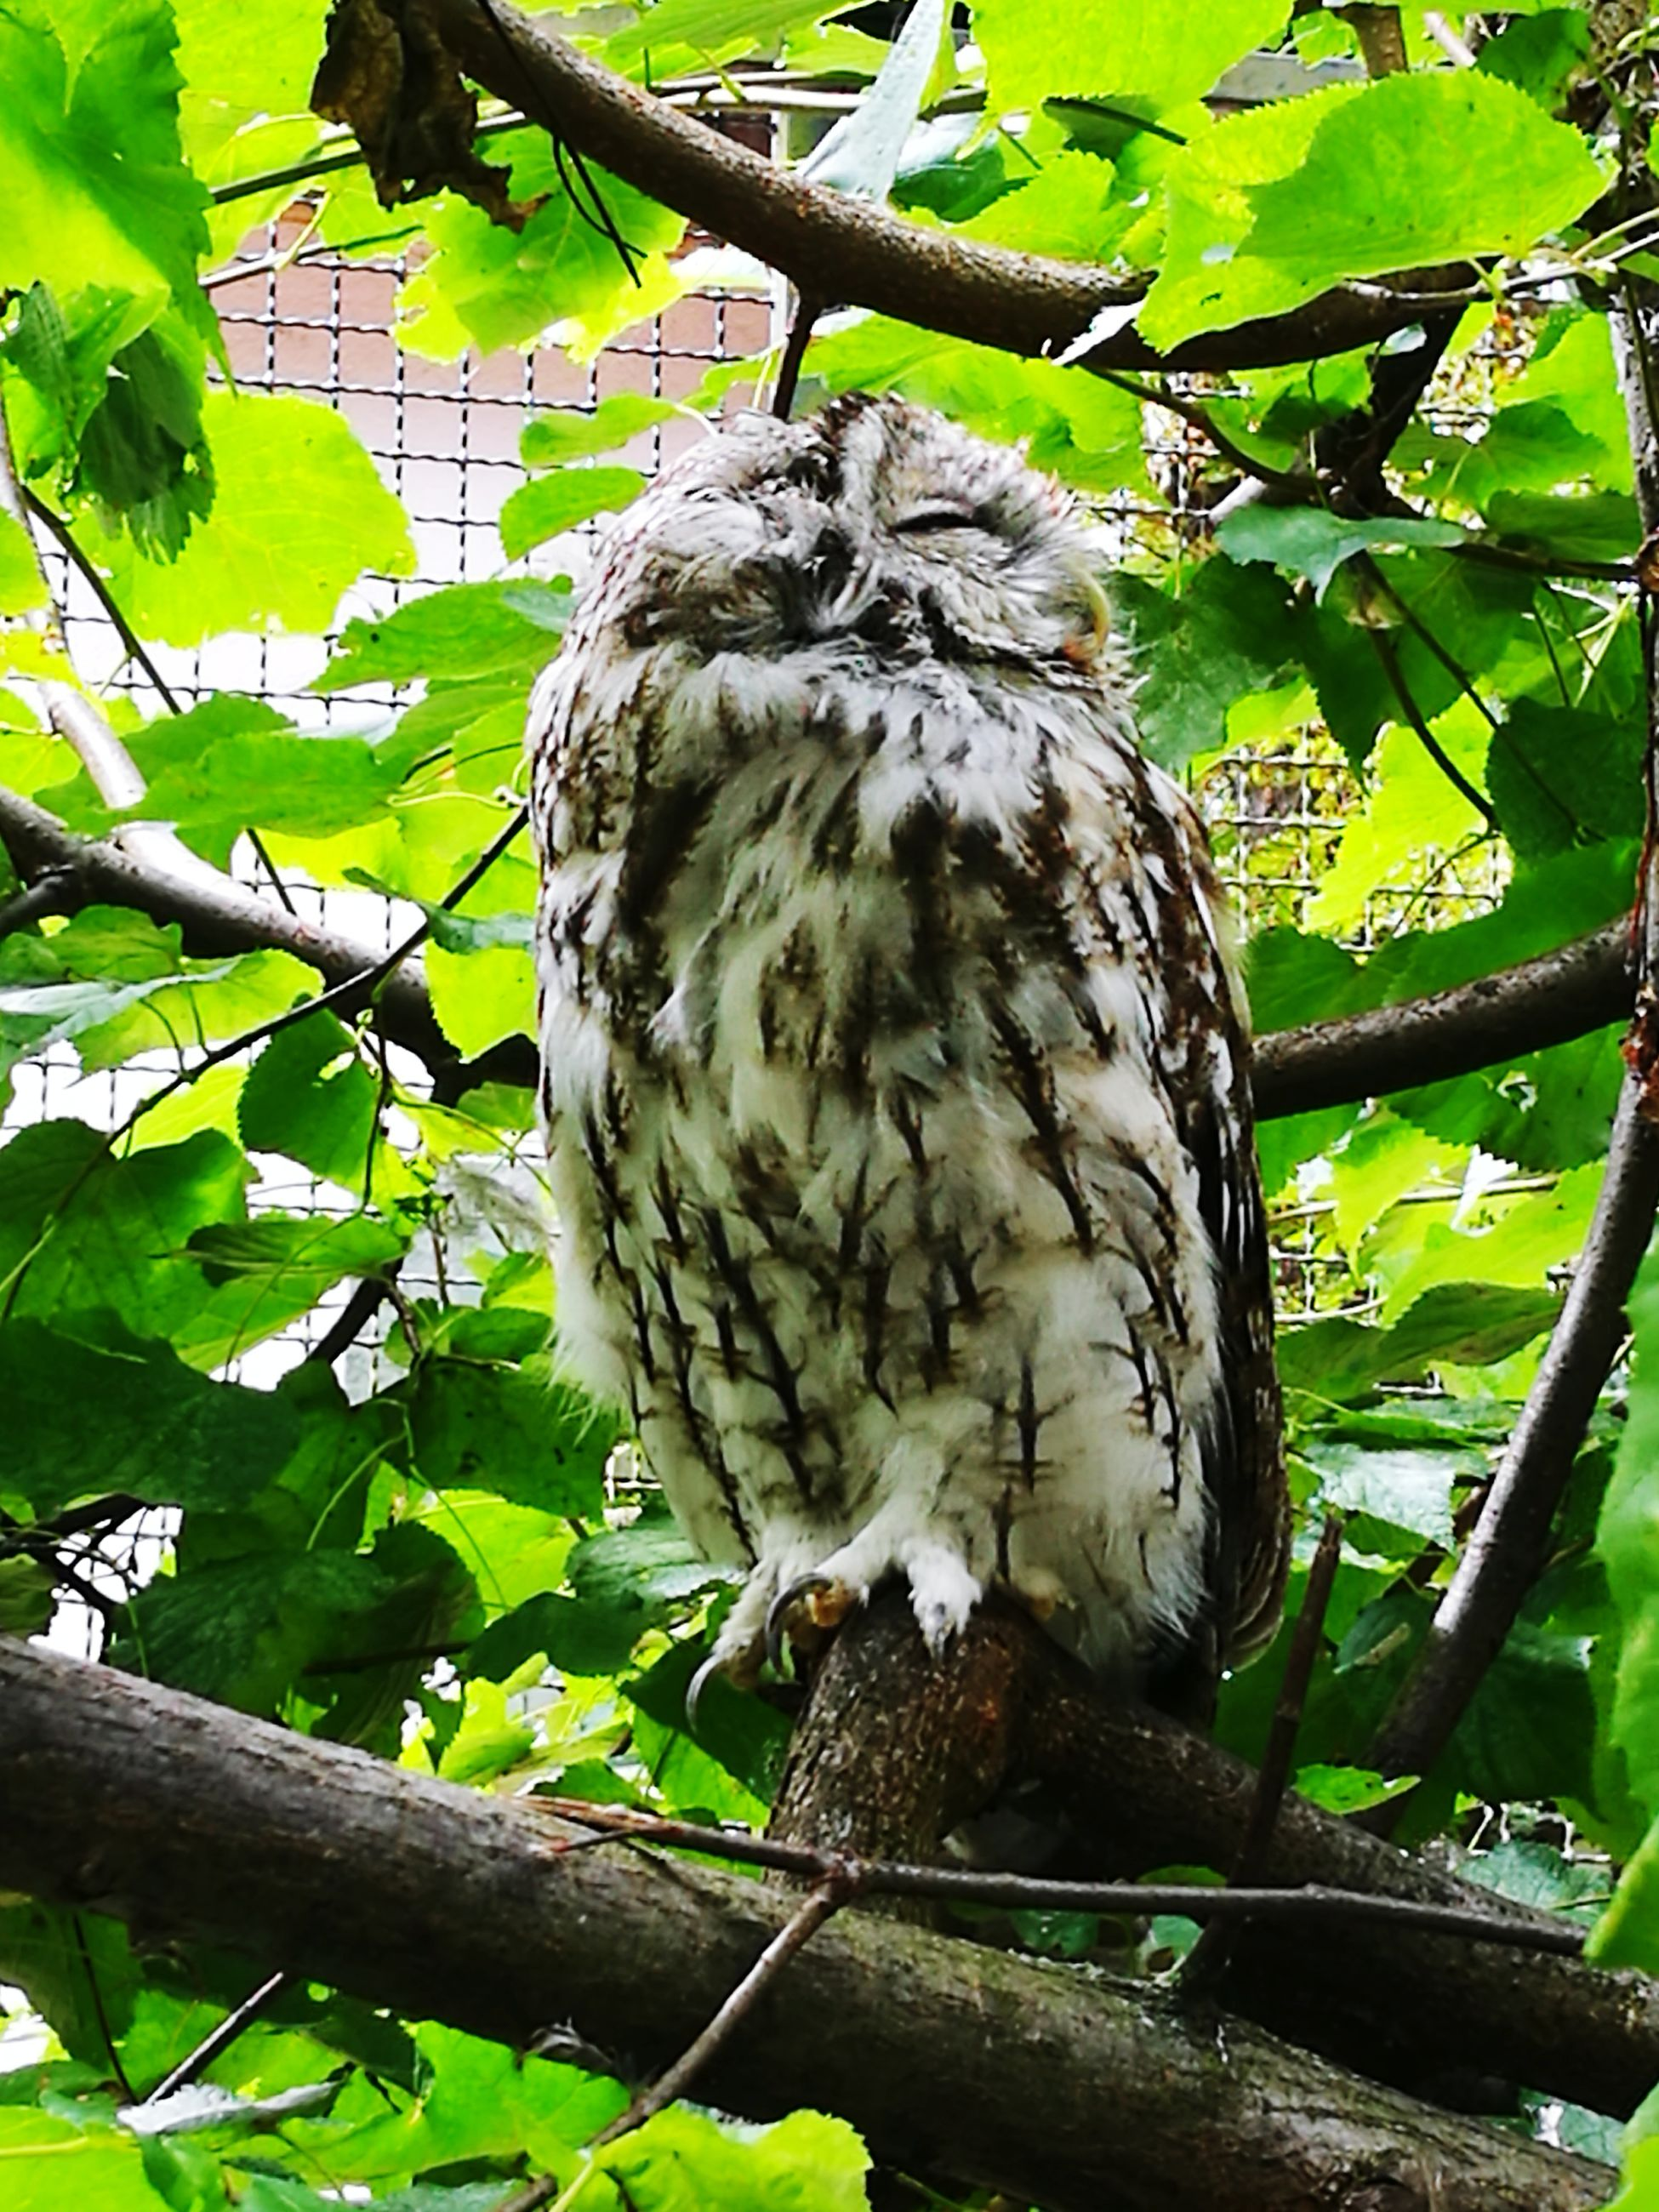 bird, animal themes, one animal, animals in the wild, branch, tree, animal wildlife, bird of prey, perching, nature, low angle view, day, no people, outdoors, leaf, close-up, full length, owl, beauty in nature